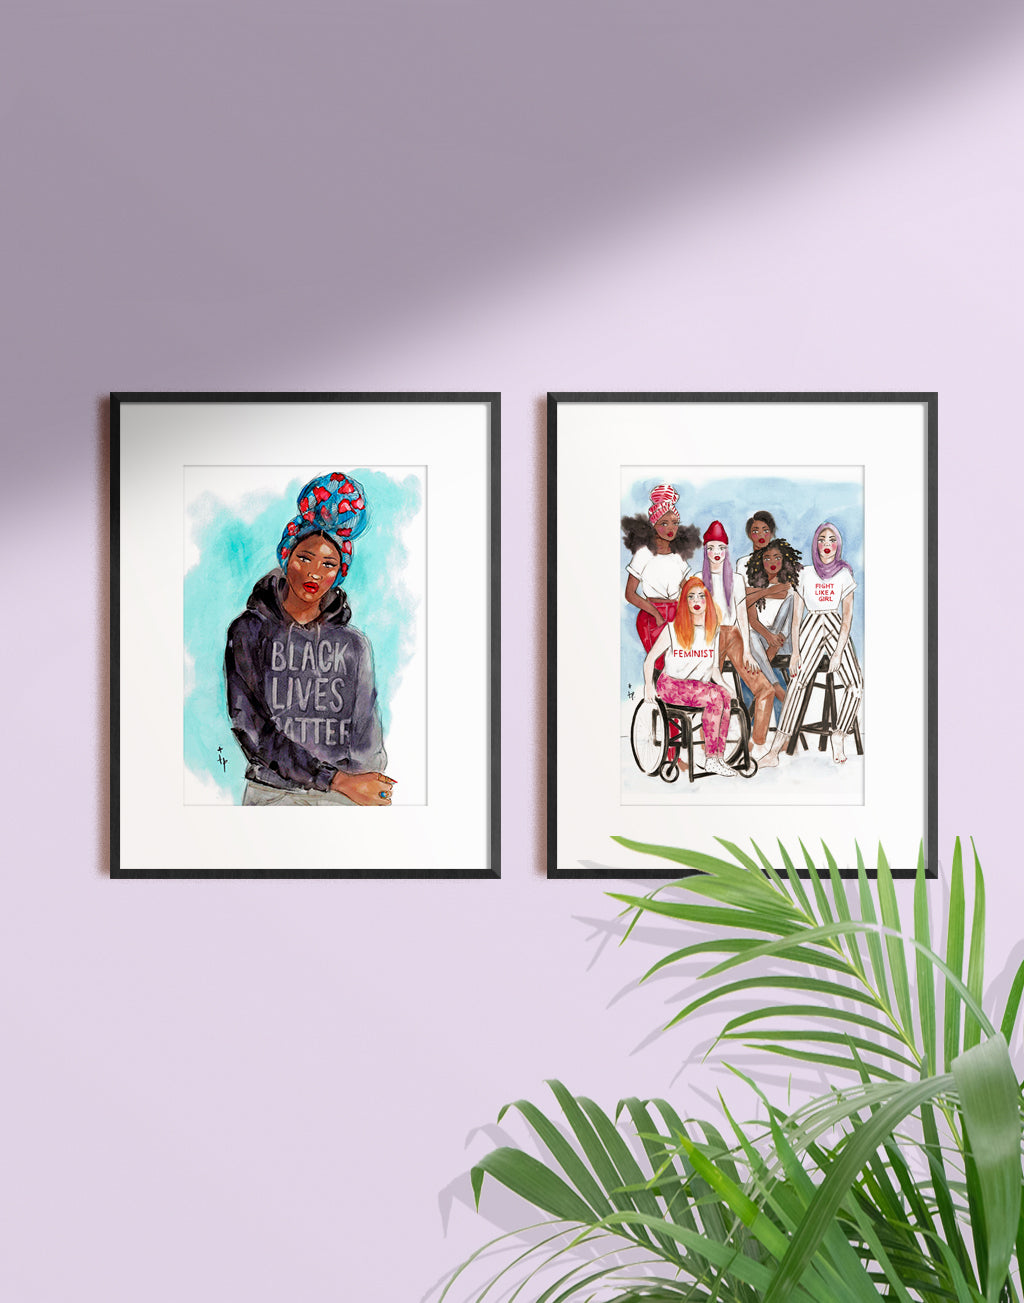 Woman wearing a colorful headwrap and Black Lives Matter hoodie art print illustration in a frame by Tatiana Poblah